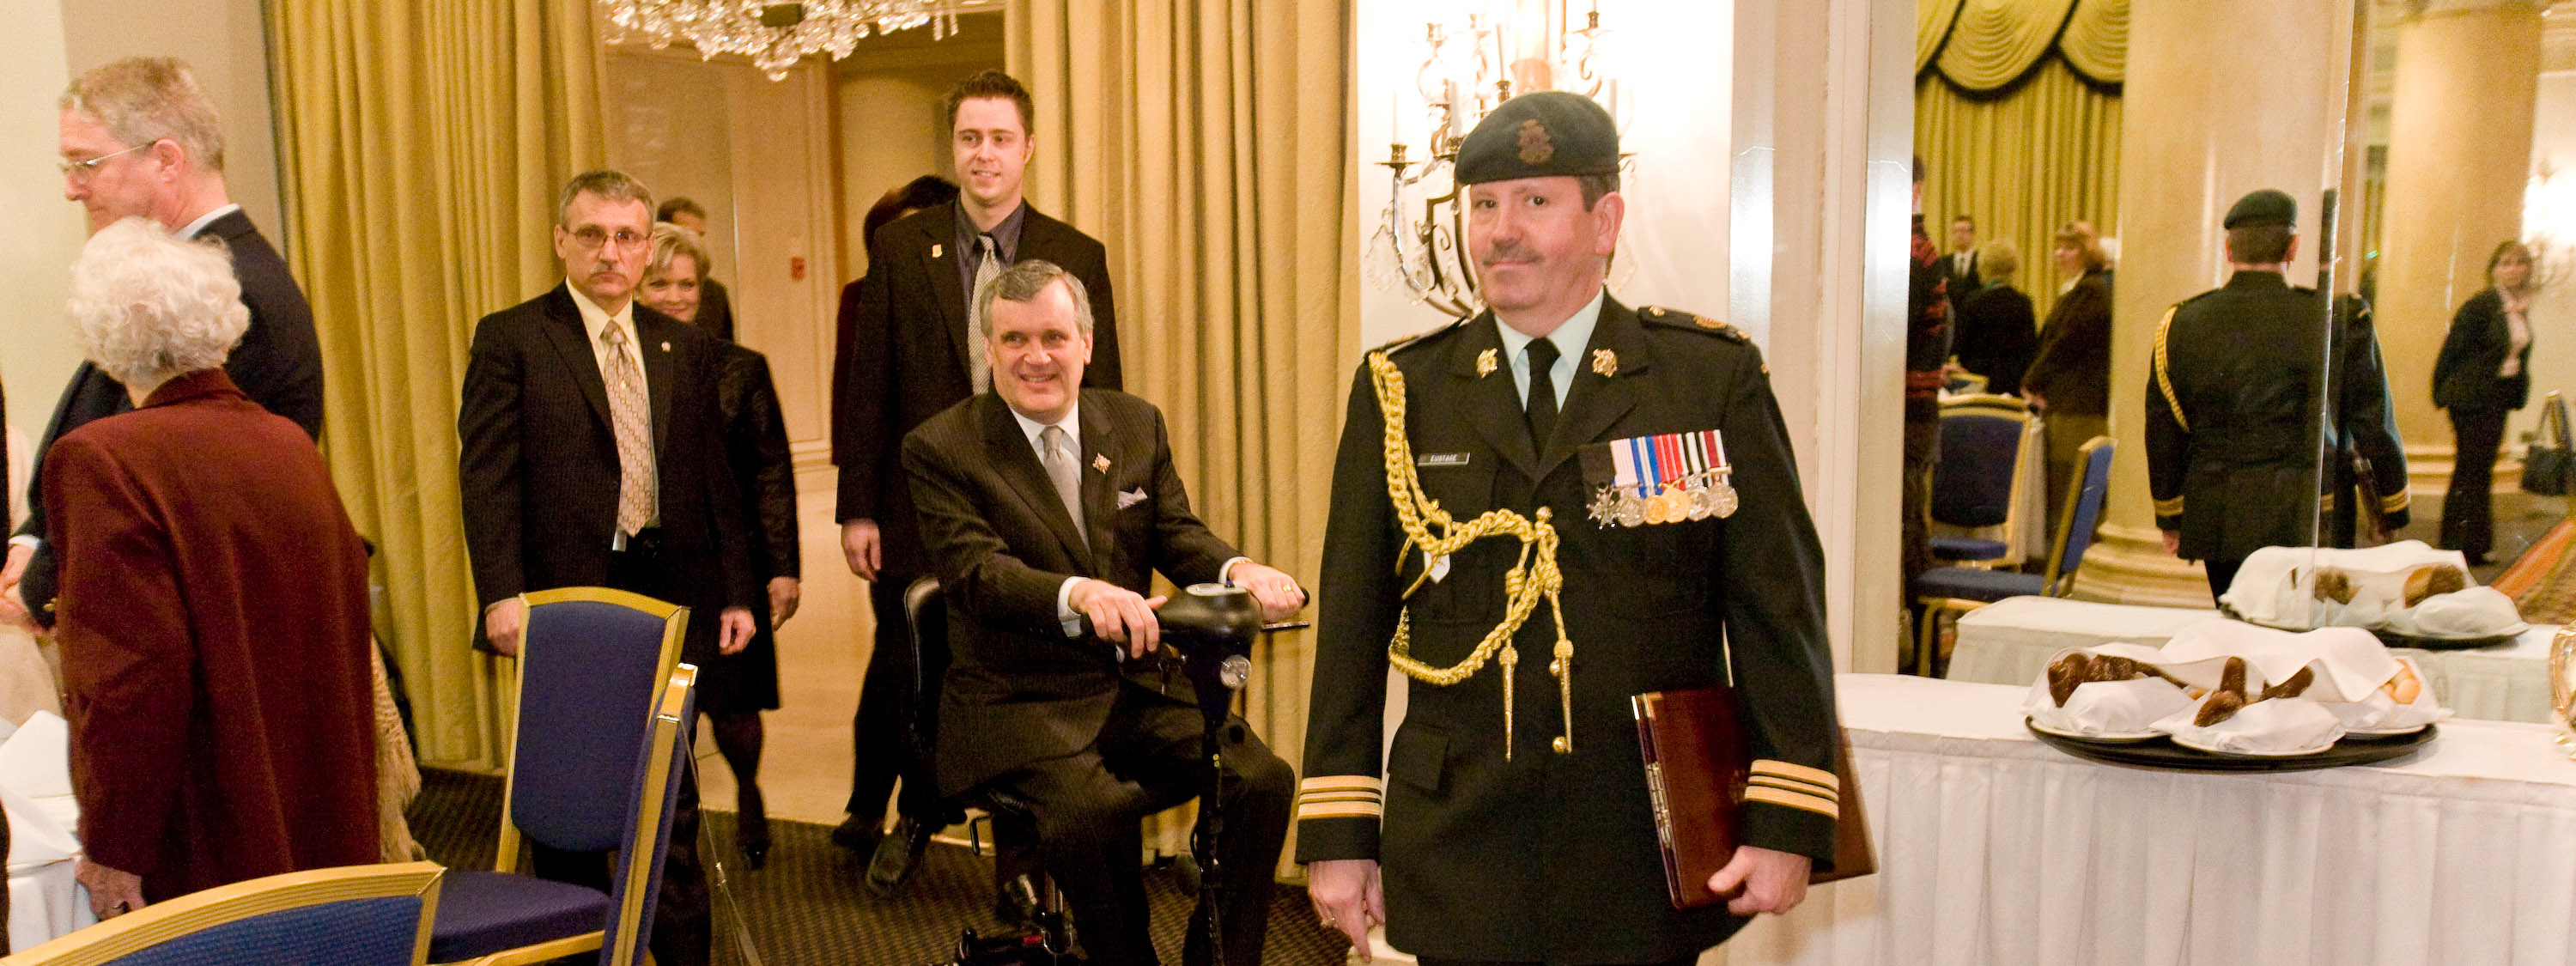 The Honourable David C. Onley